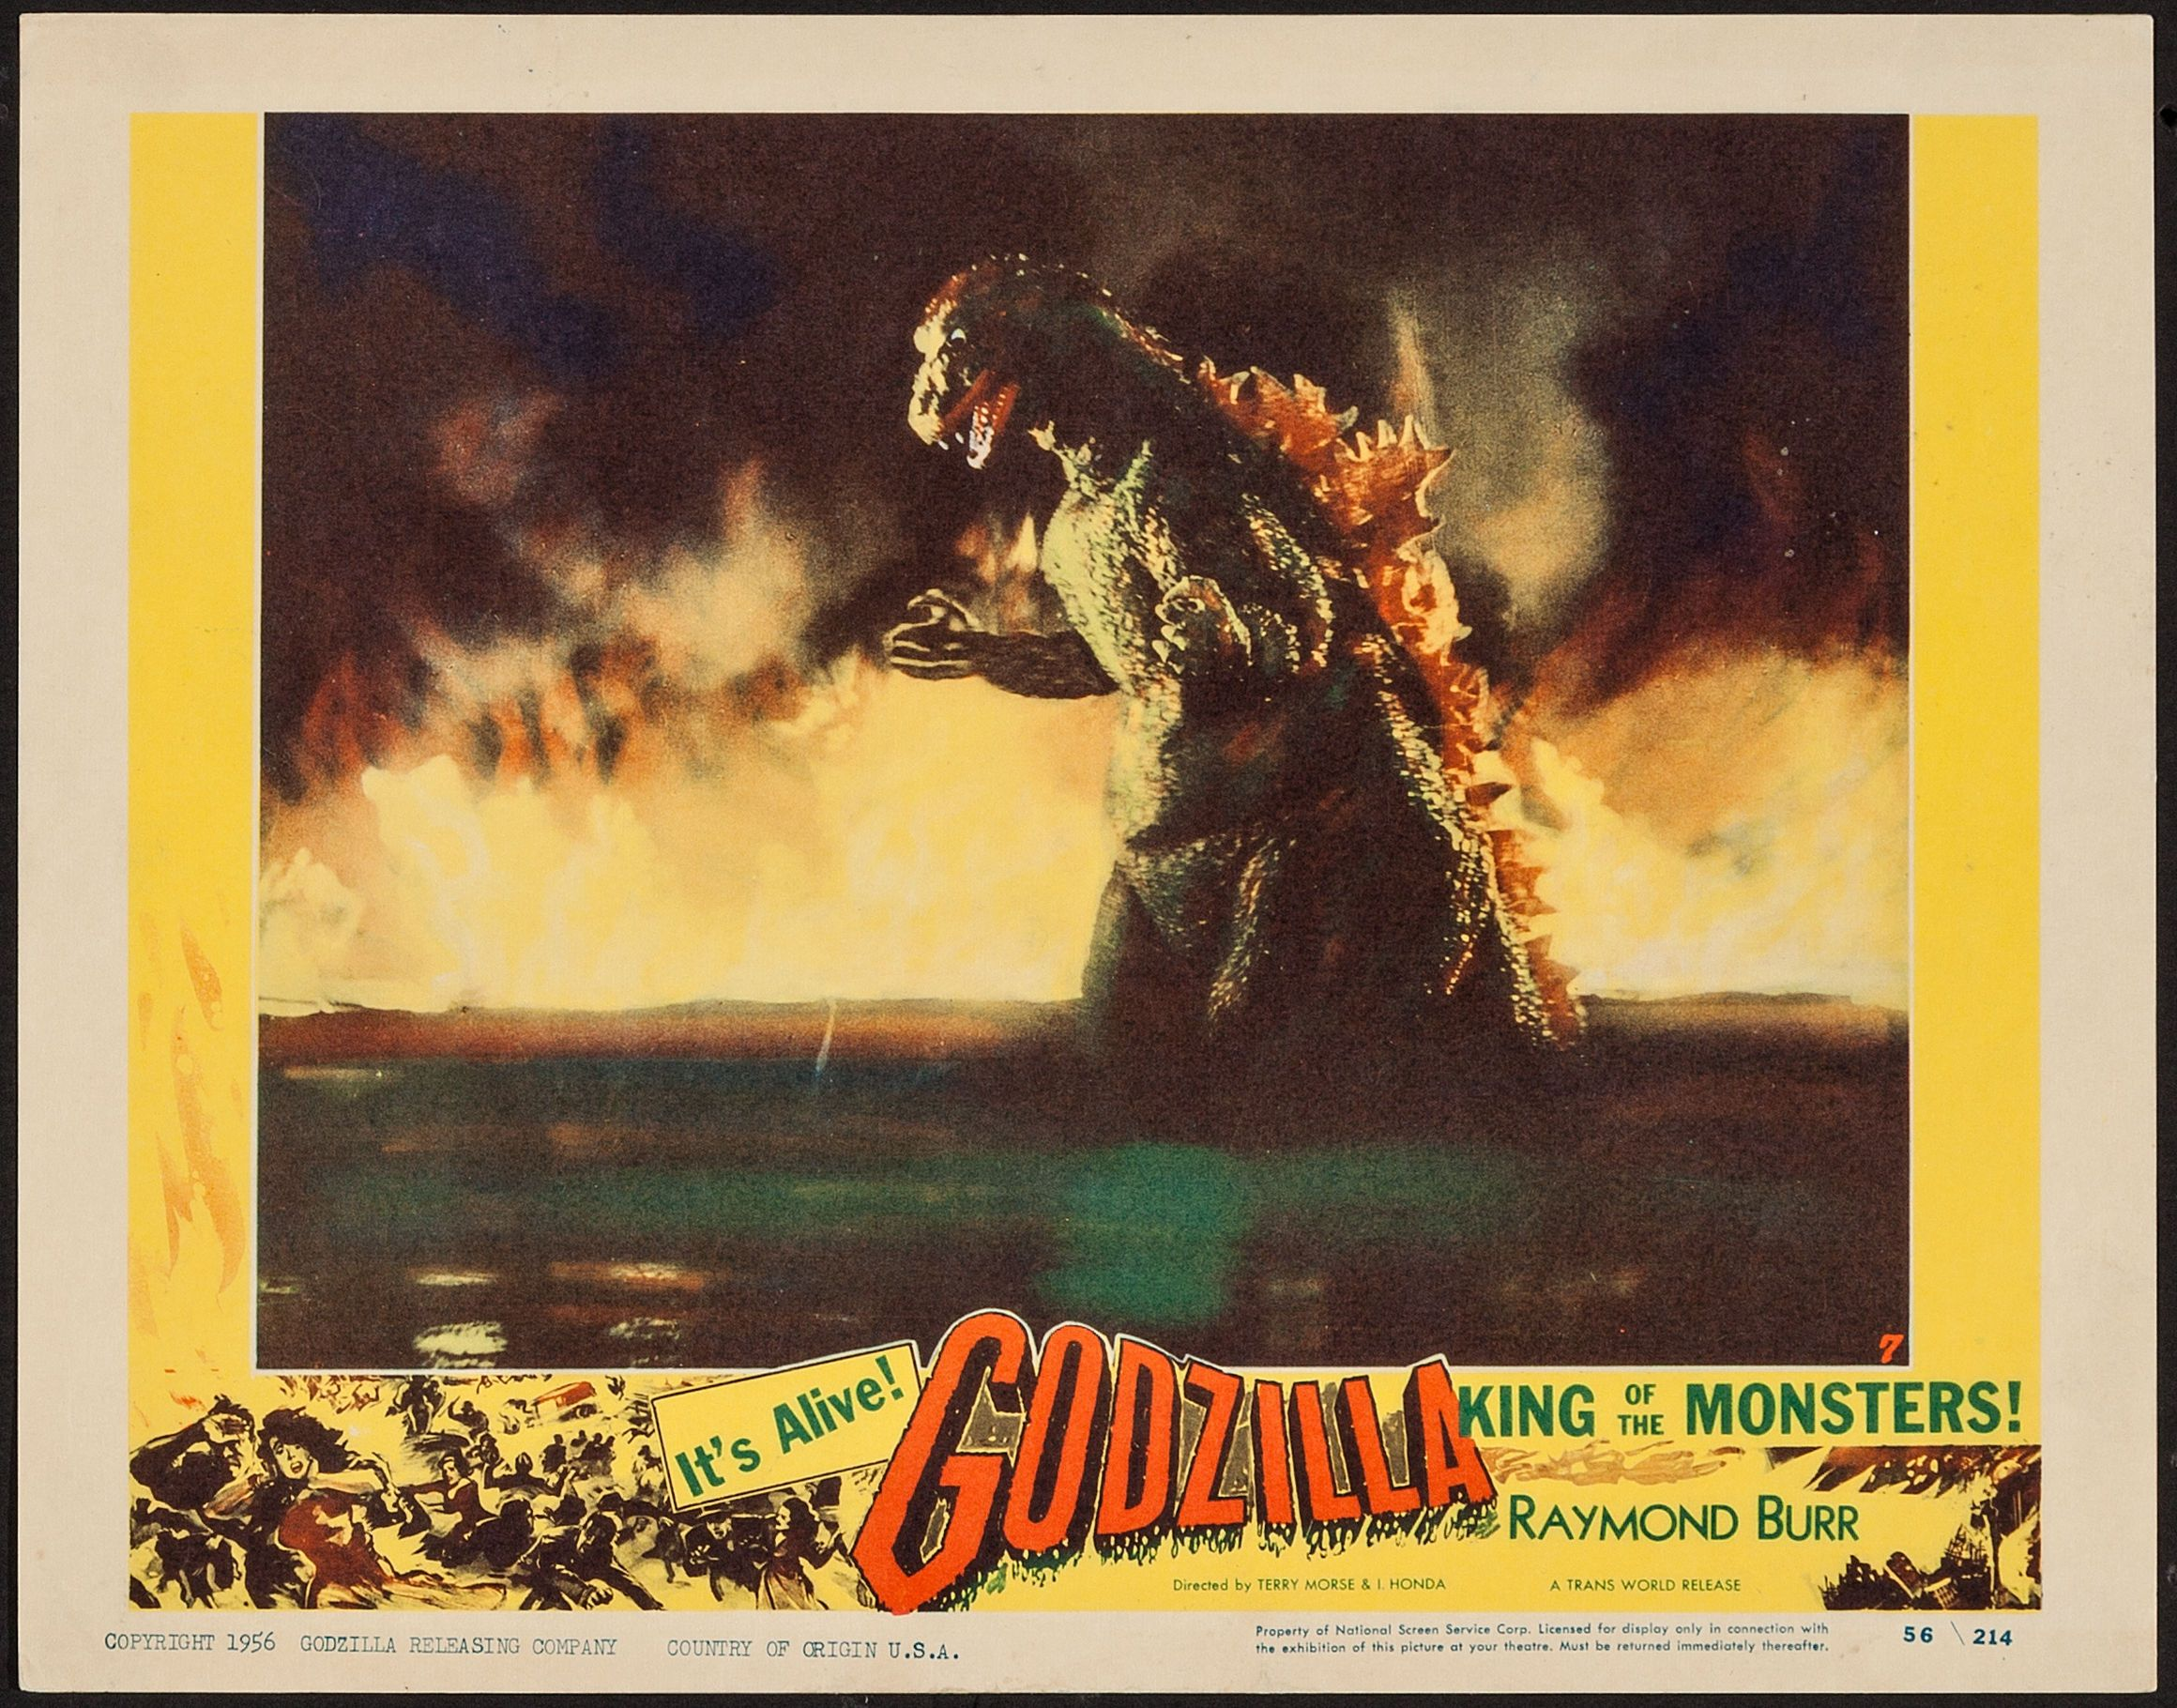 Lobby card for the American release of Godzilla, GODZILLA KING OF ...